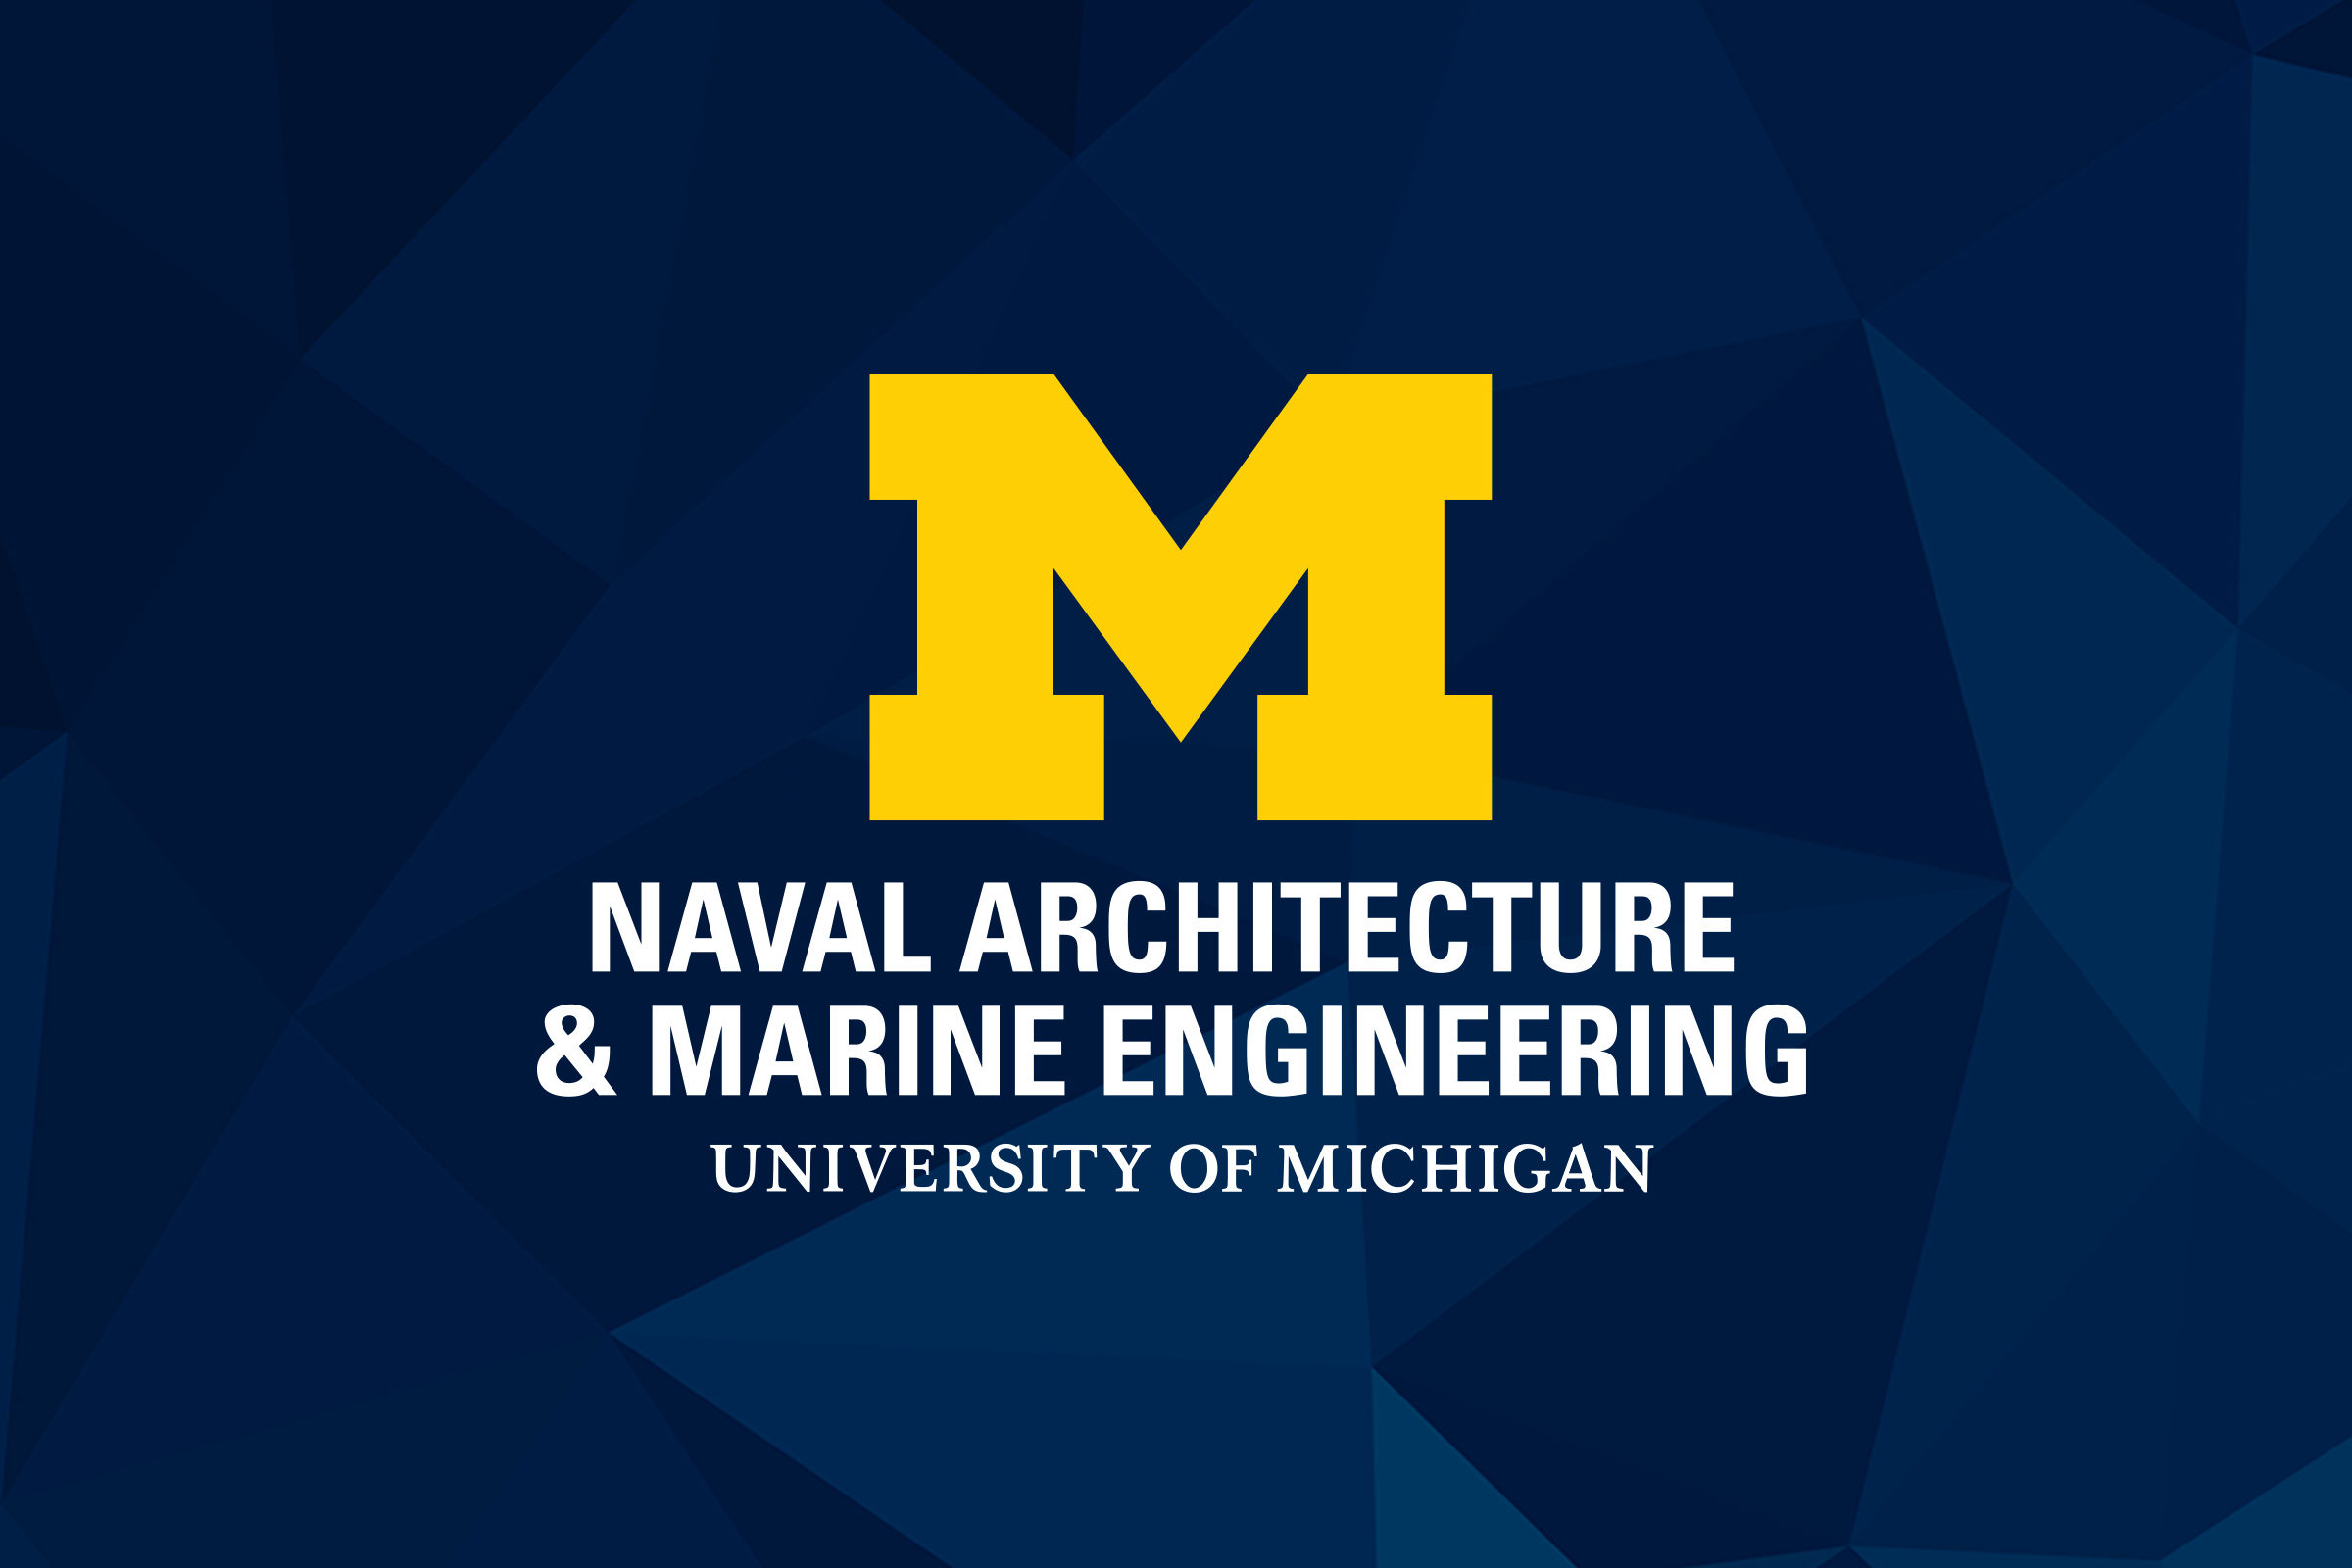 Naval Architecture & Marine Engineering logo